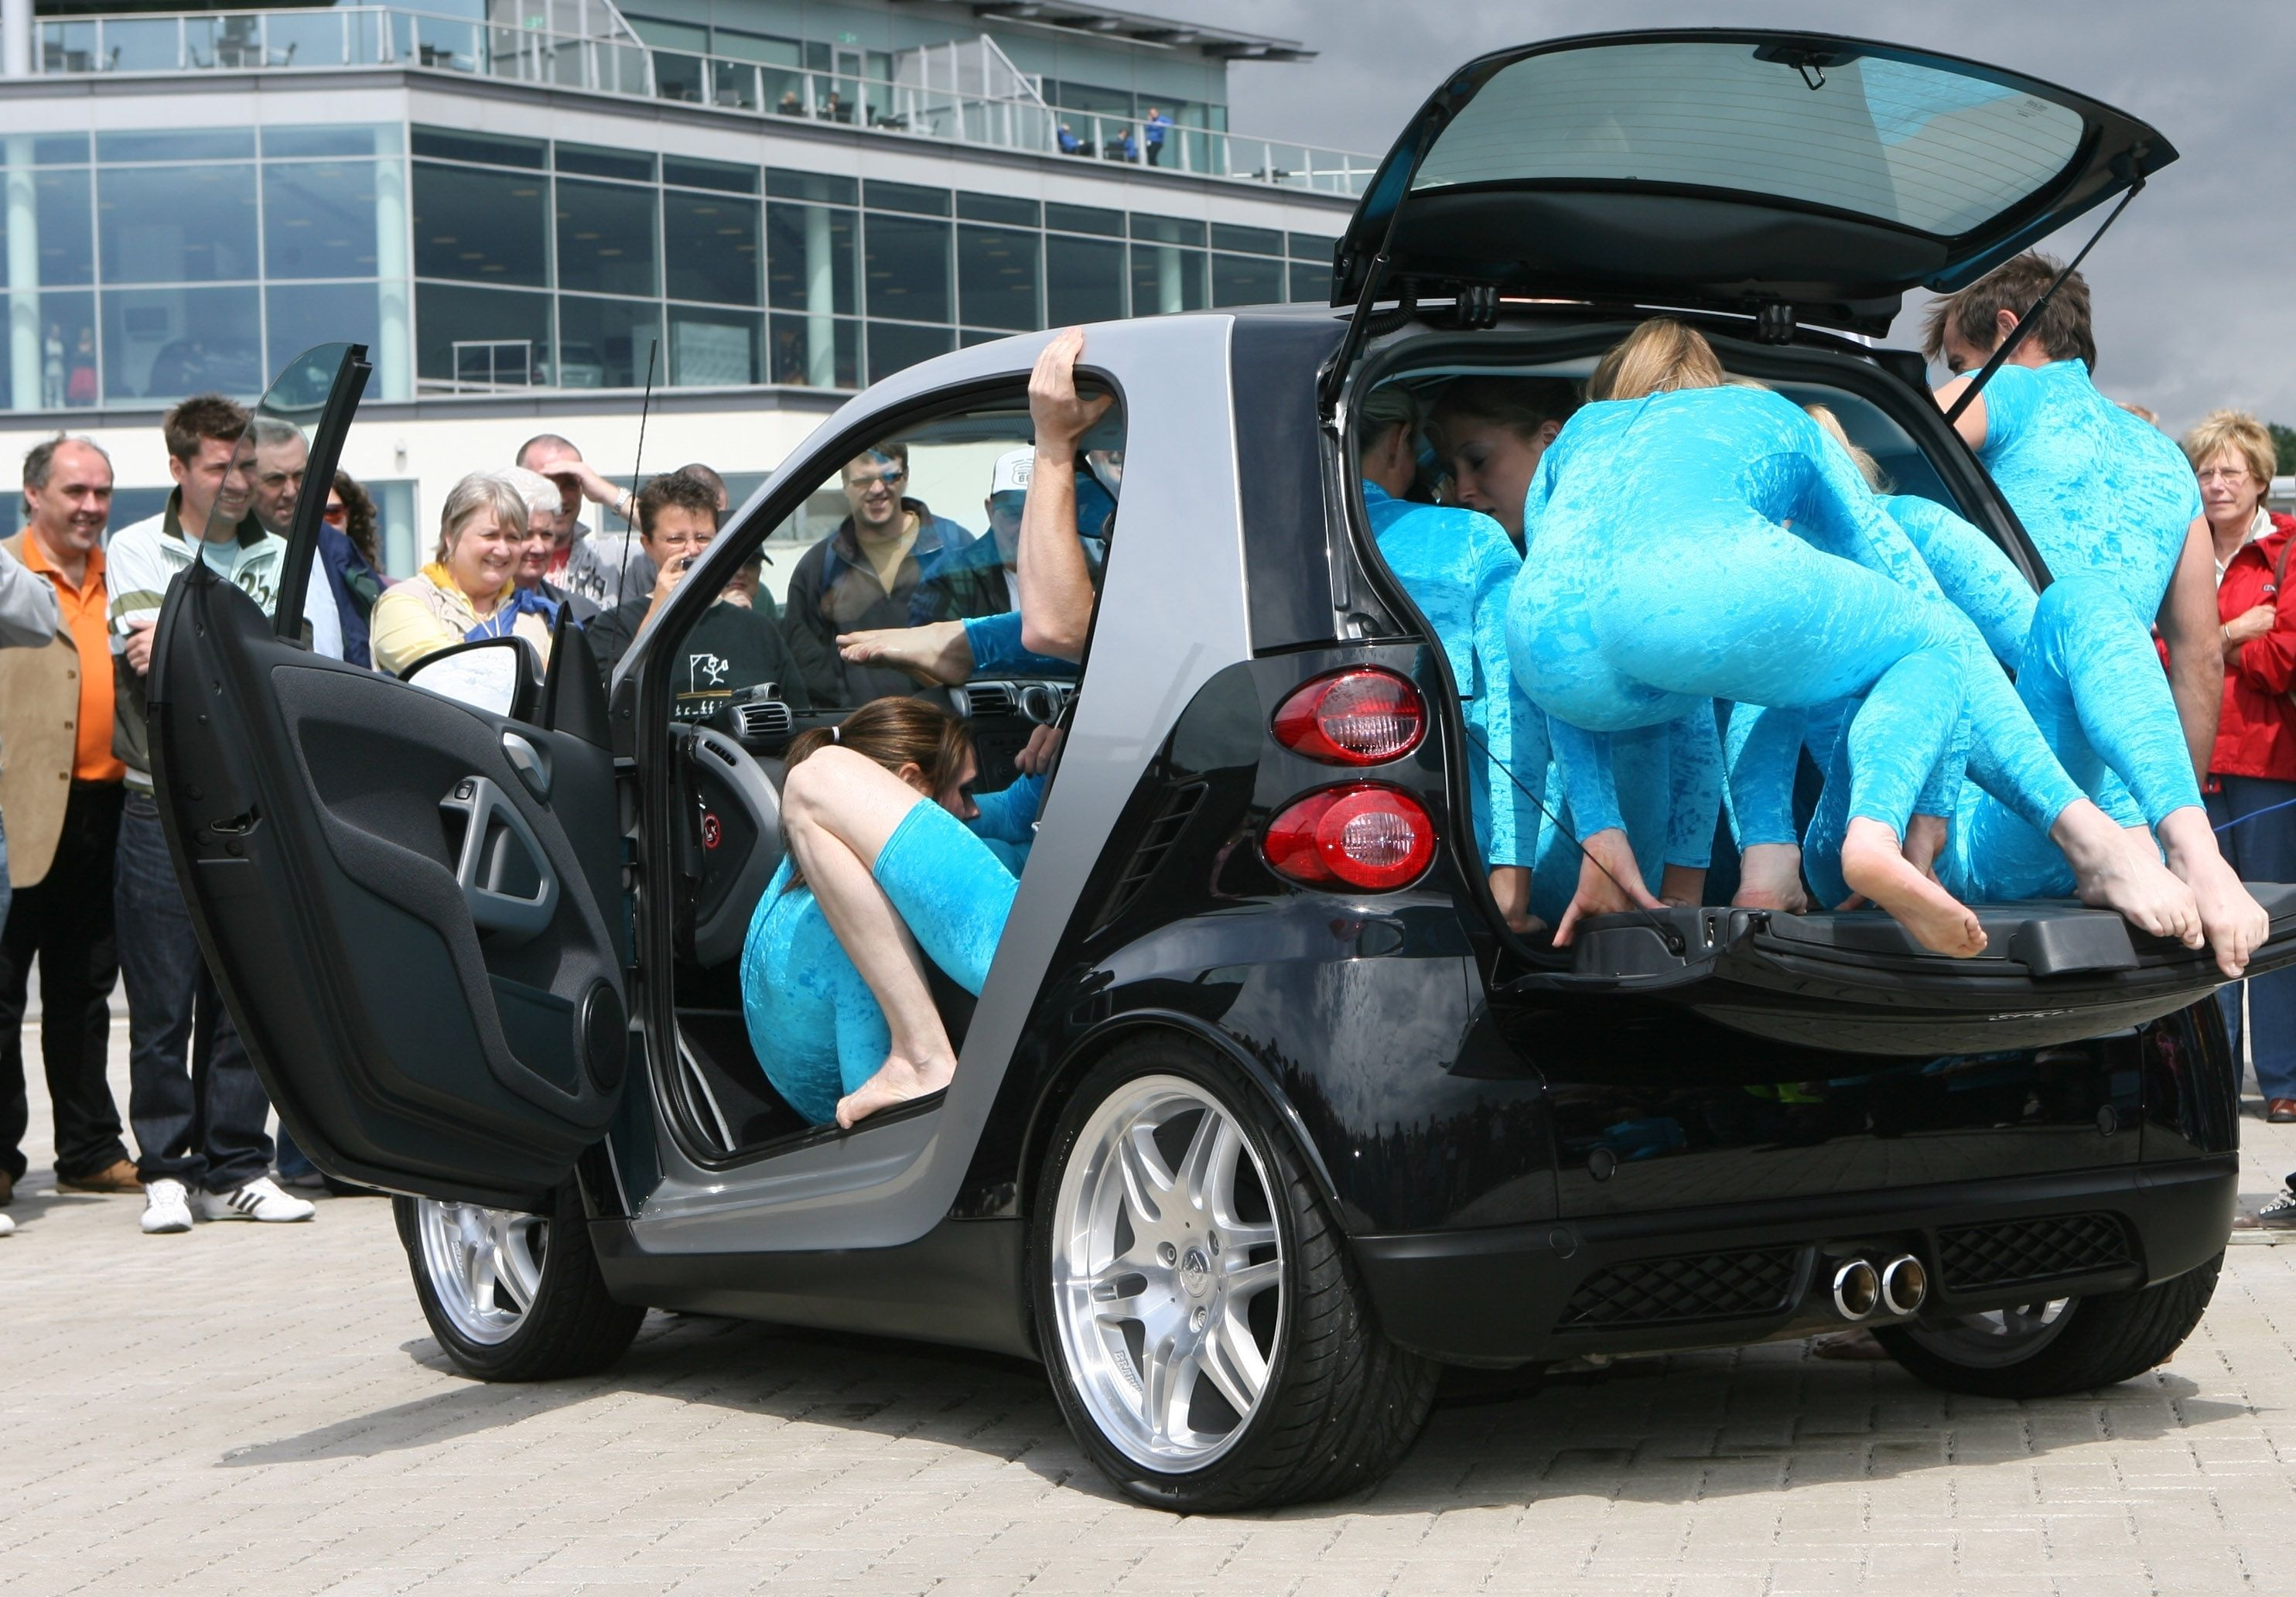 Did You Know If Wanted To Could Cram 19 People Inside A Smart Car Then Again Why Would Want Www Jiffyse